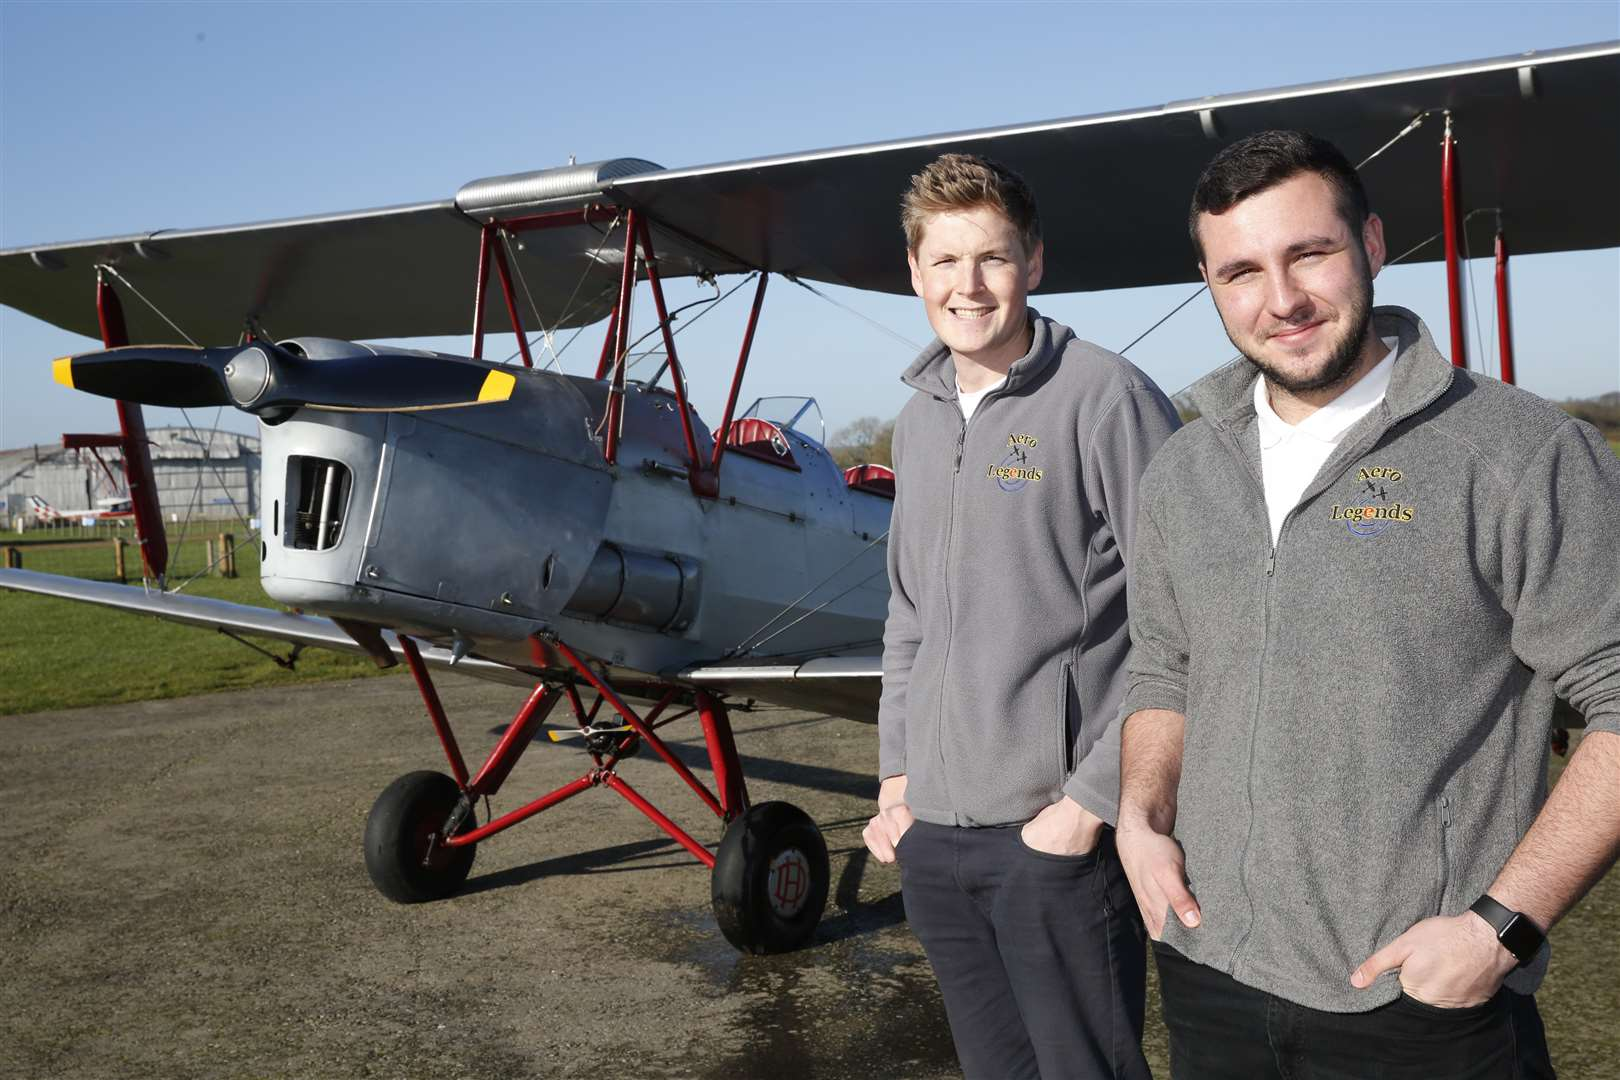 Elliot Styles and Ben Perkins. Aero Legends are asking people interested in vintage aircraft volunteer in exchange for free flights and lessons in their aircraft